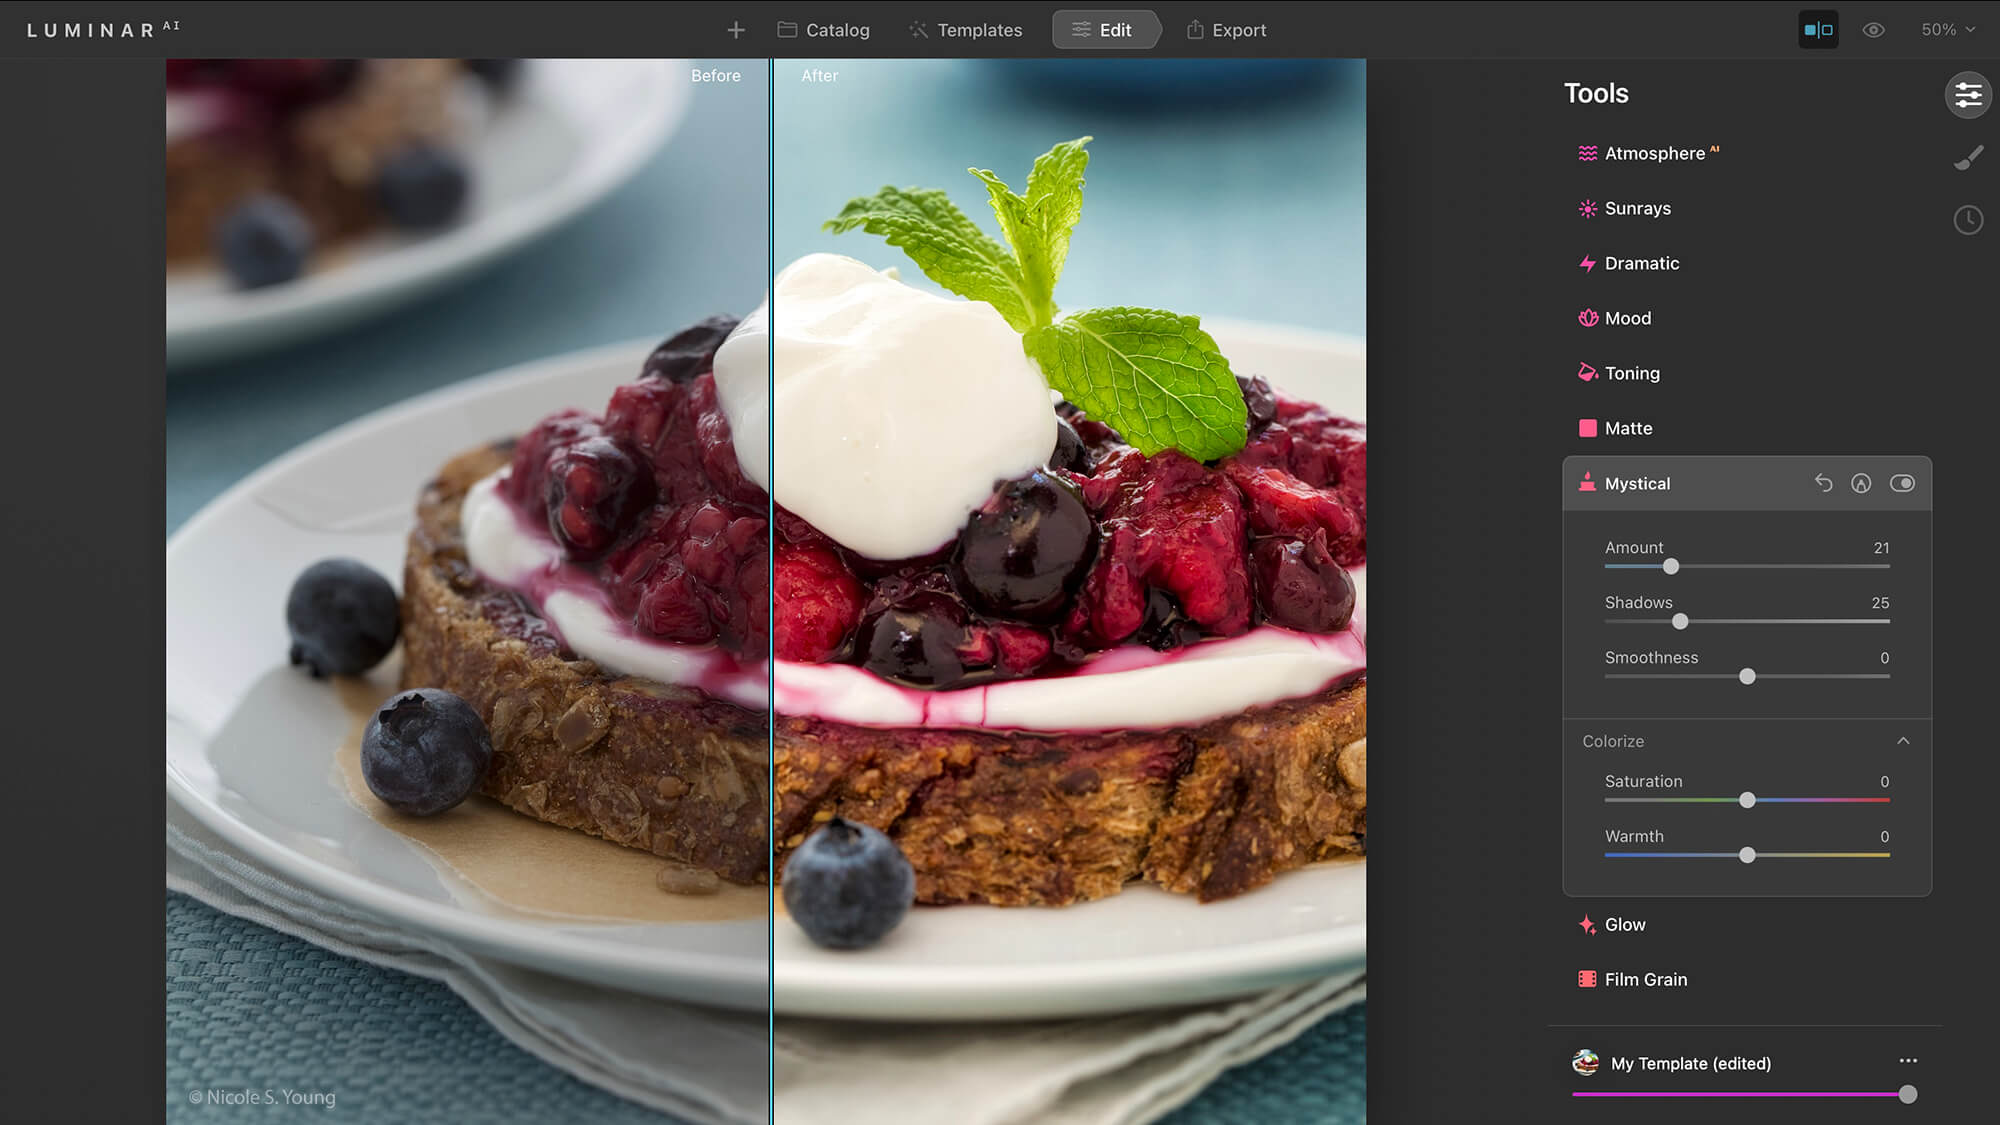 food photography tips for editing with Luminar